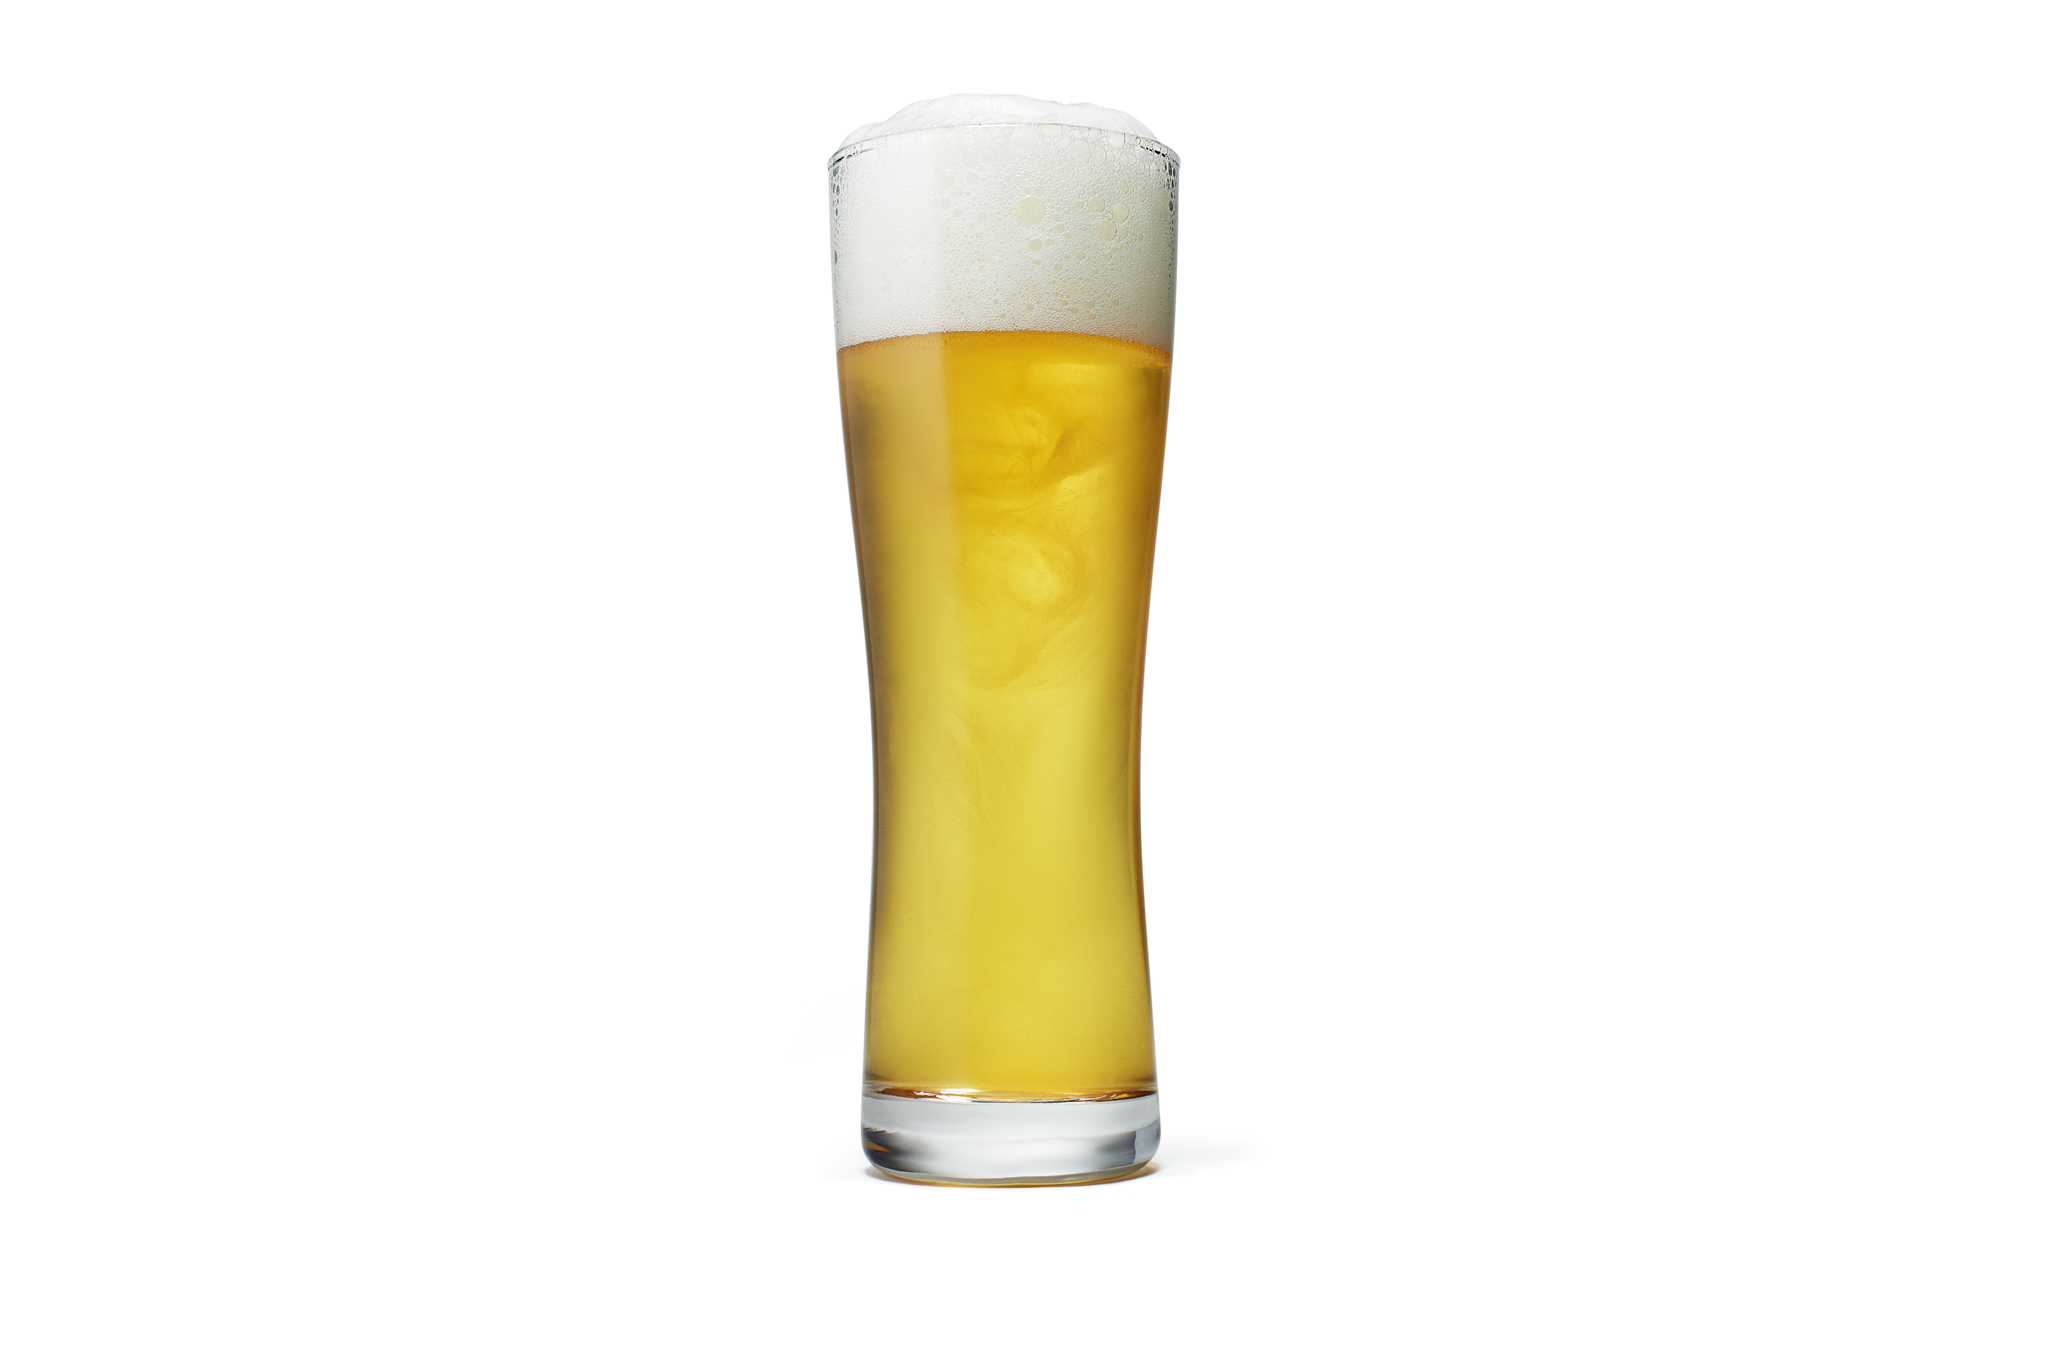 Mexican-style lager